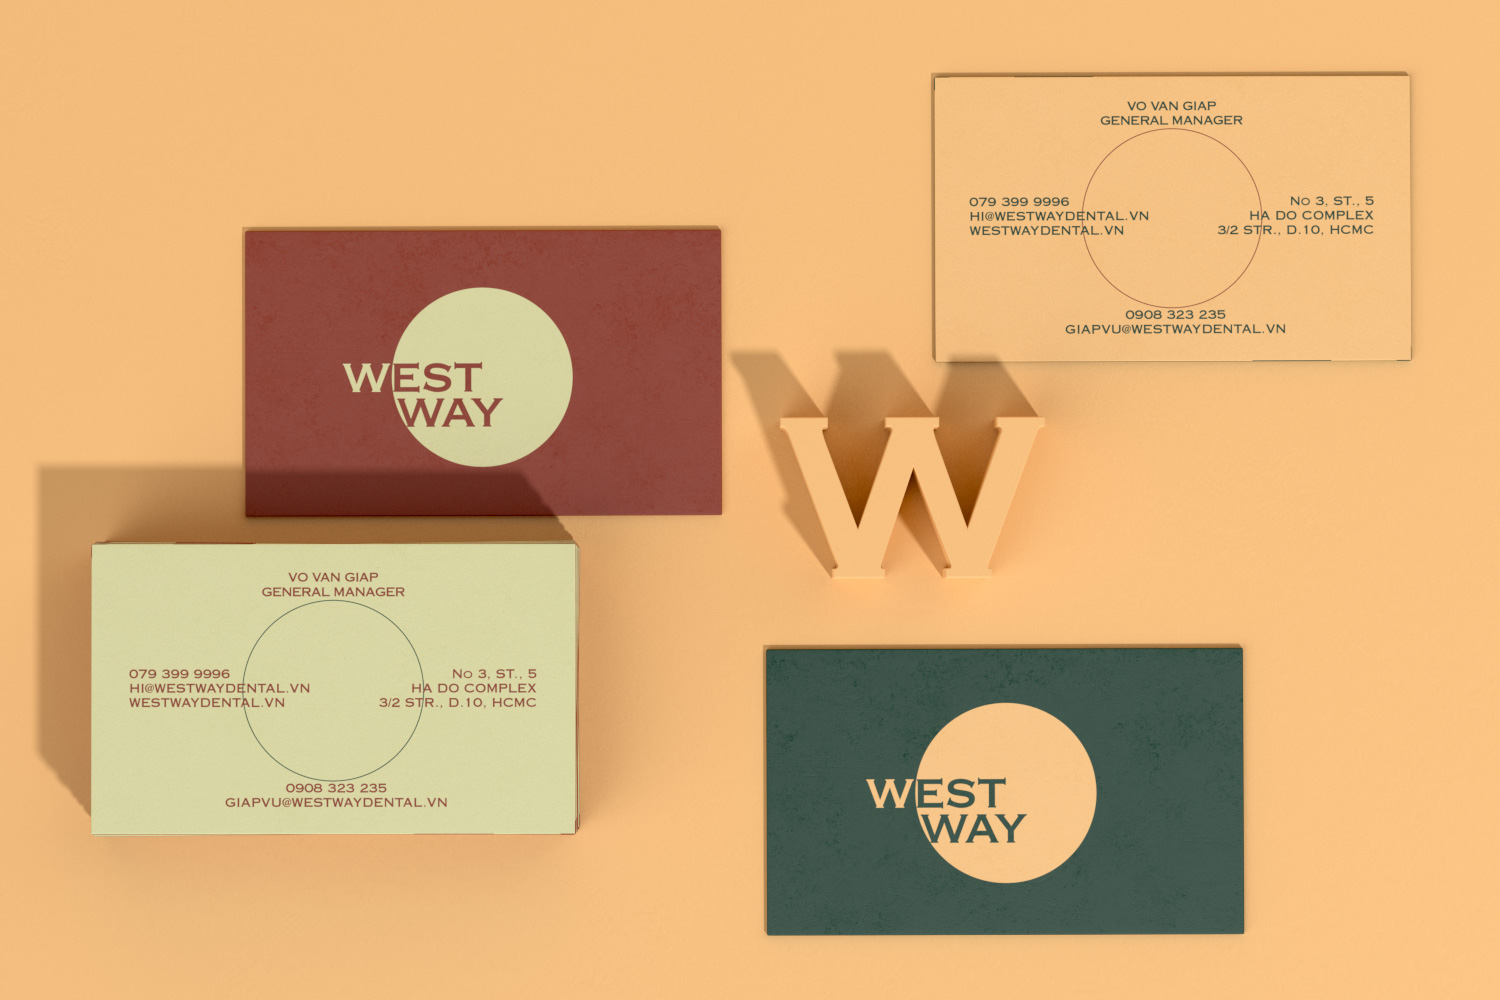 Westway business card on organe background